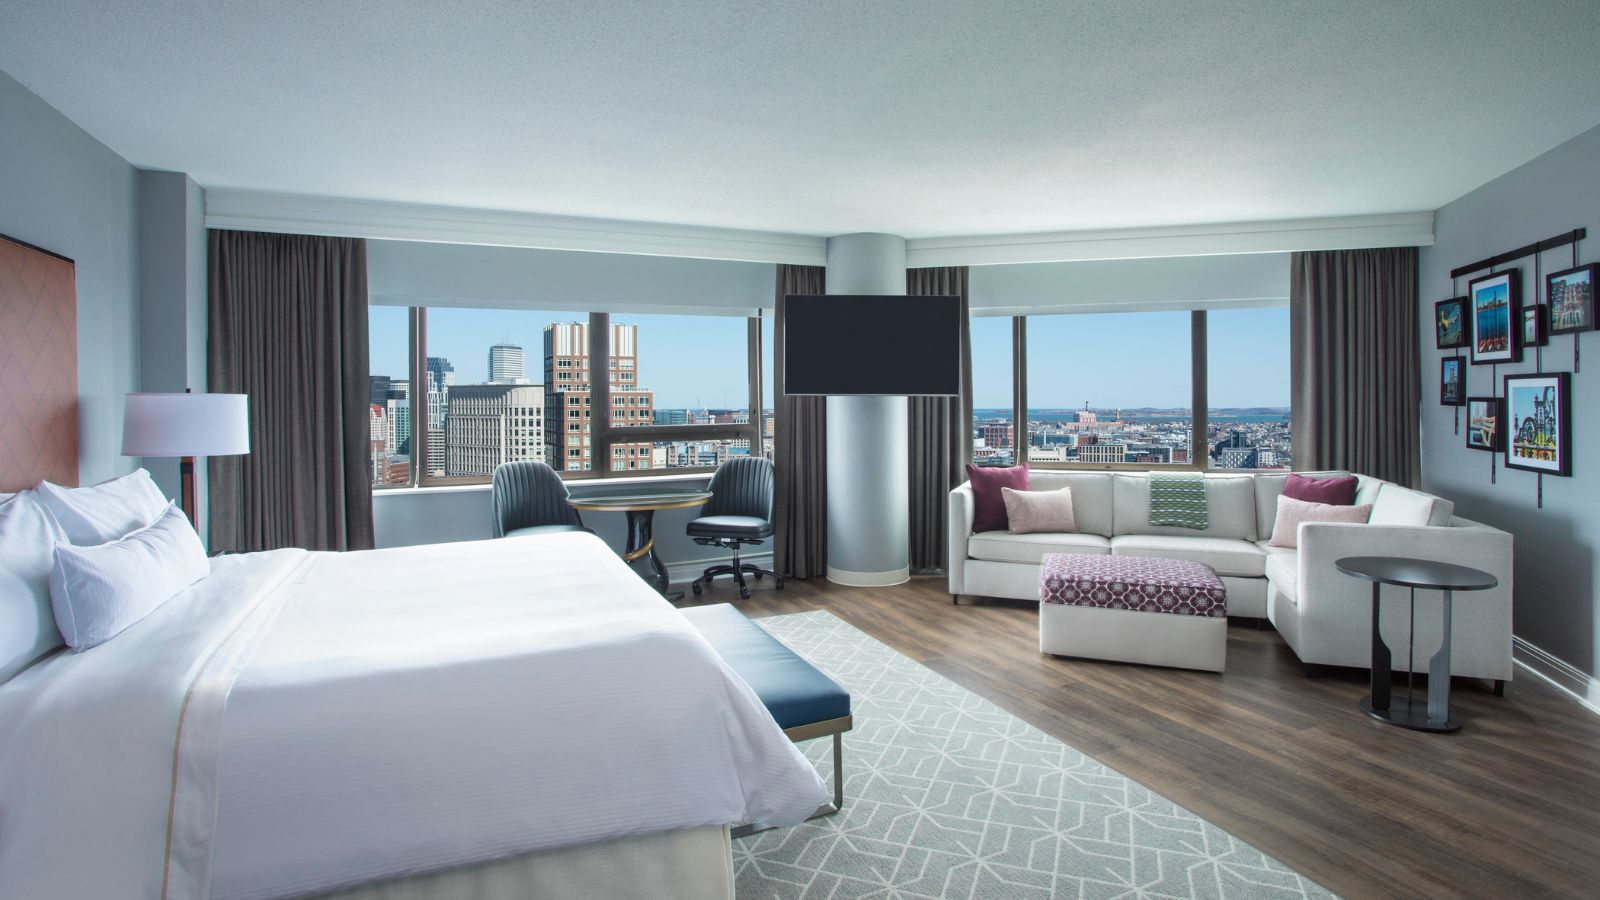 King City View Studio Suite - The Westin Copley Place, Boston